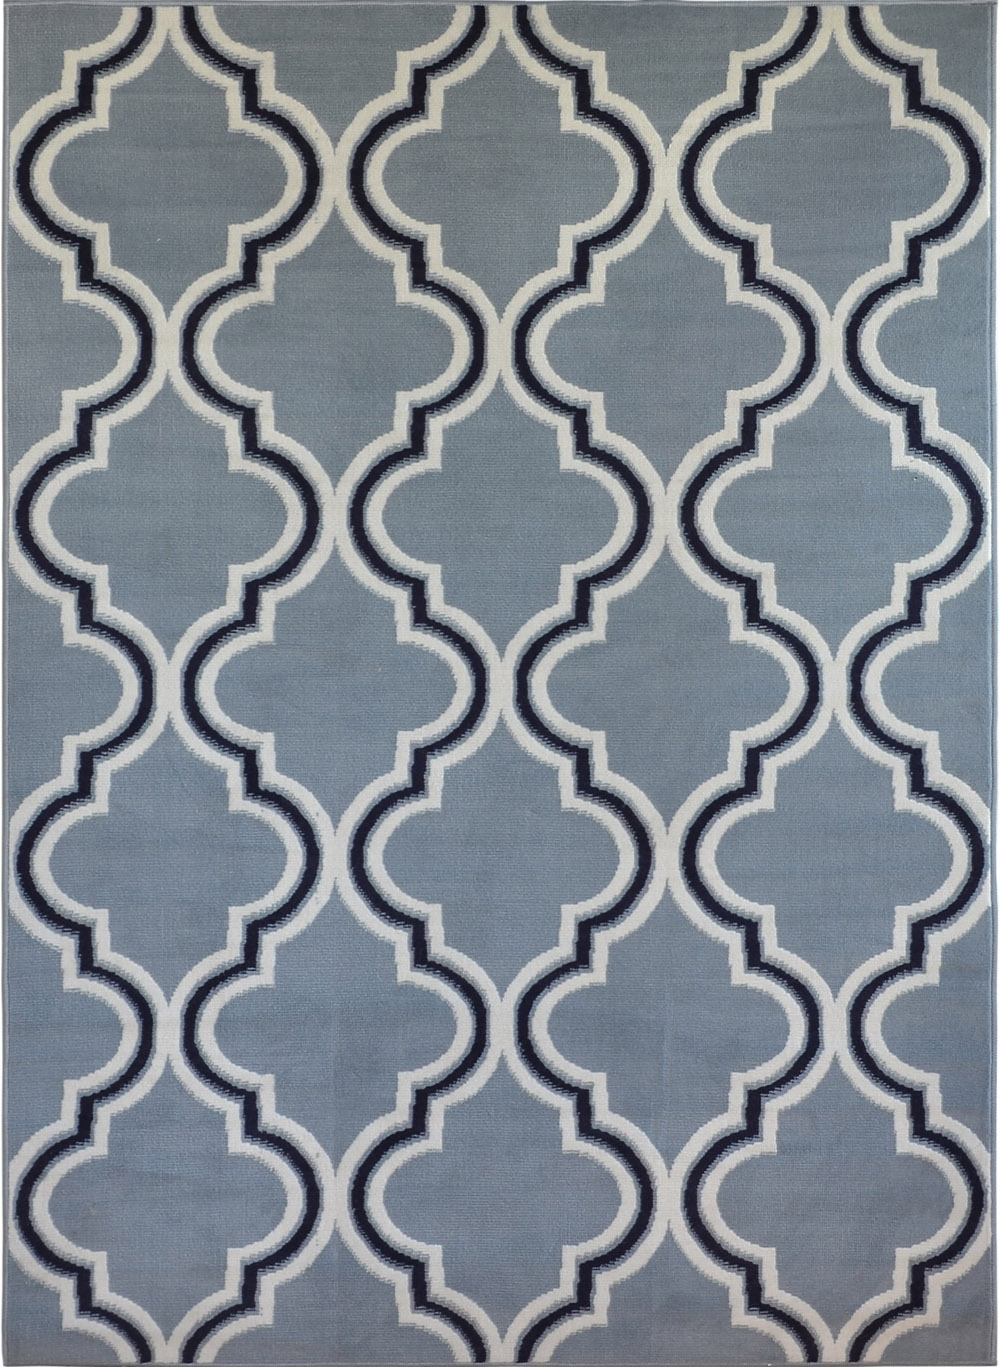 trellis moroccan tile area rug or floral lattice modern carpet